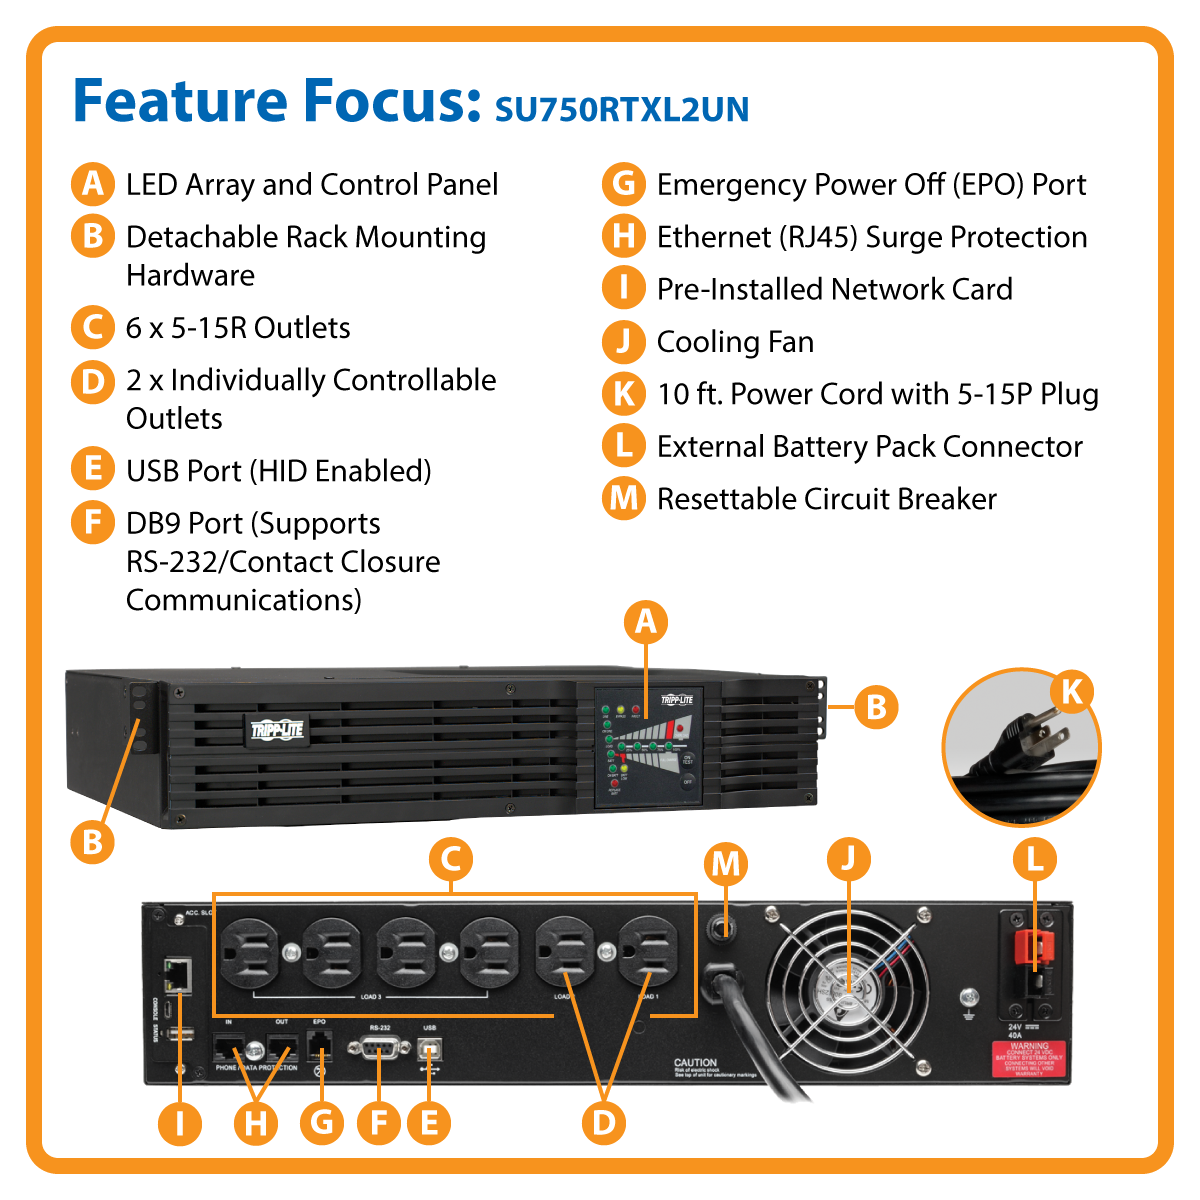 slide 1 of 10,show larger image, su2200rtxl2un smartonline®  double-conversion rack